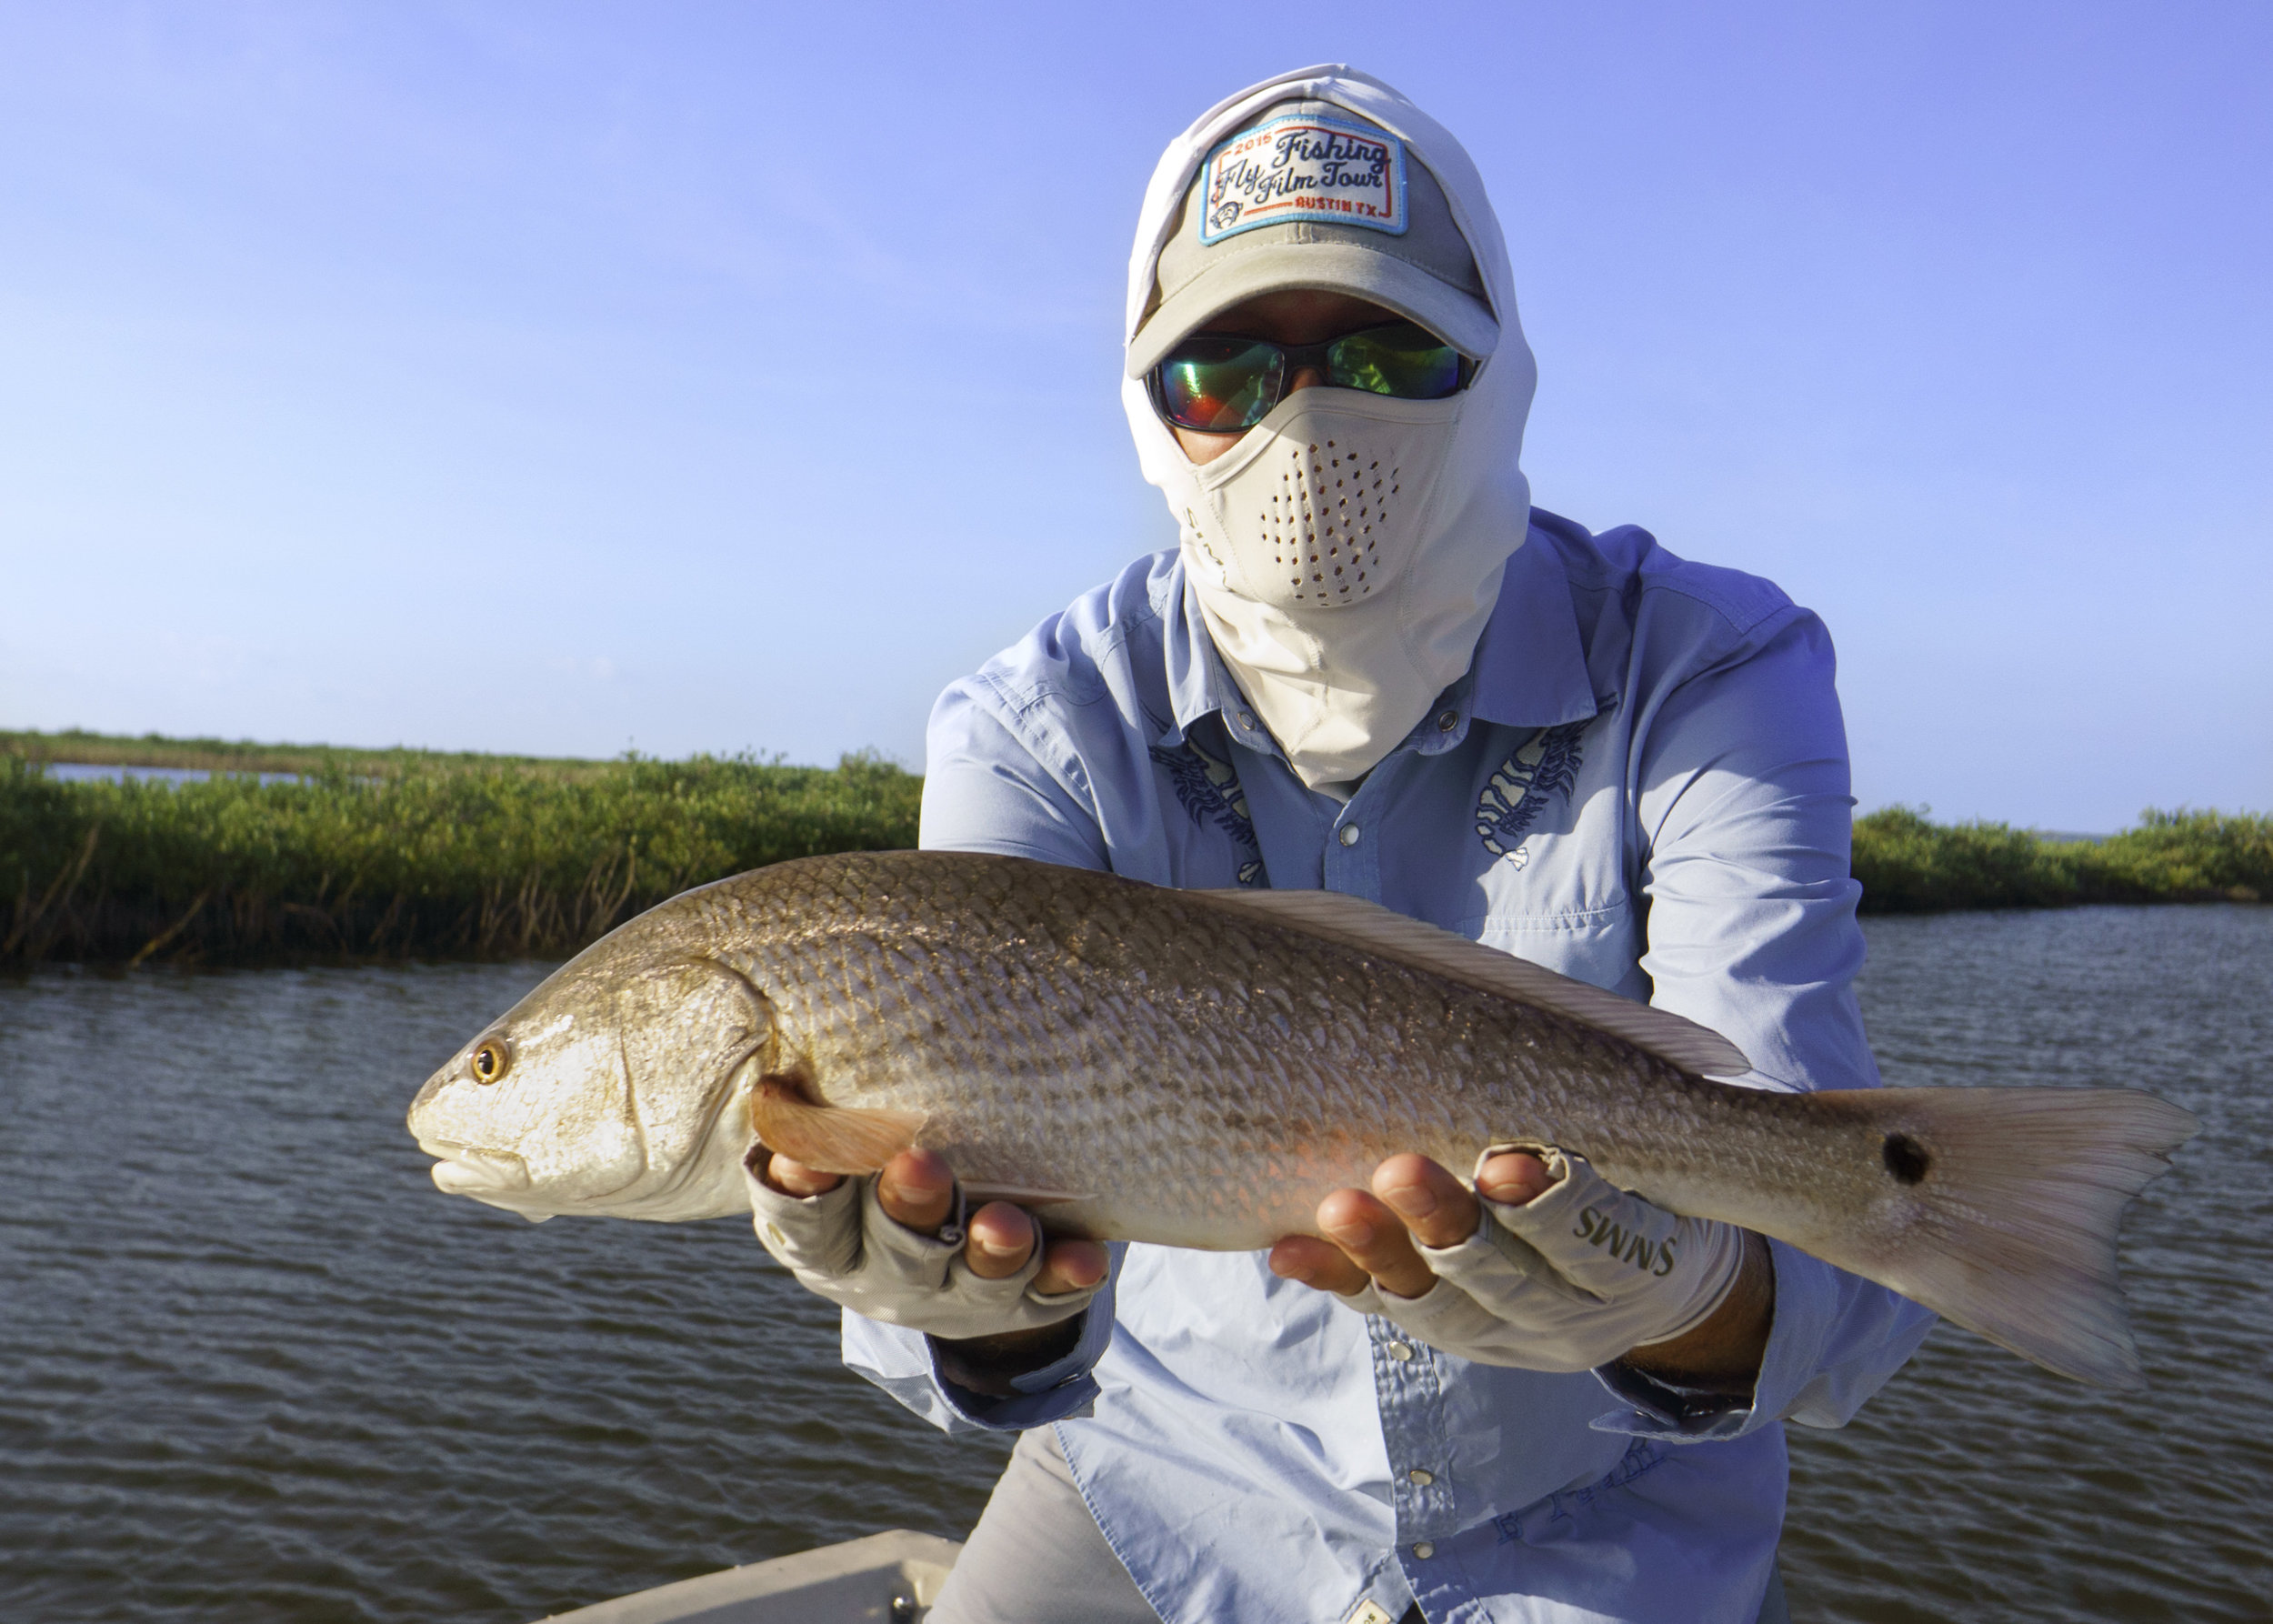 Chris Koch with a nice Texas Redfish on the fly